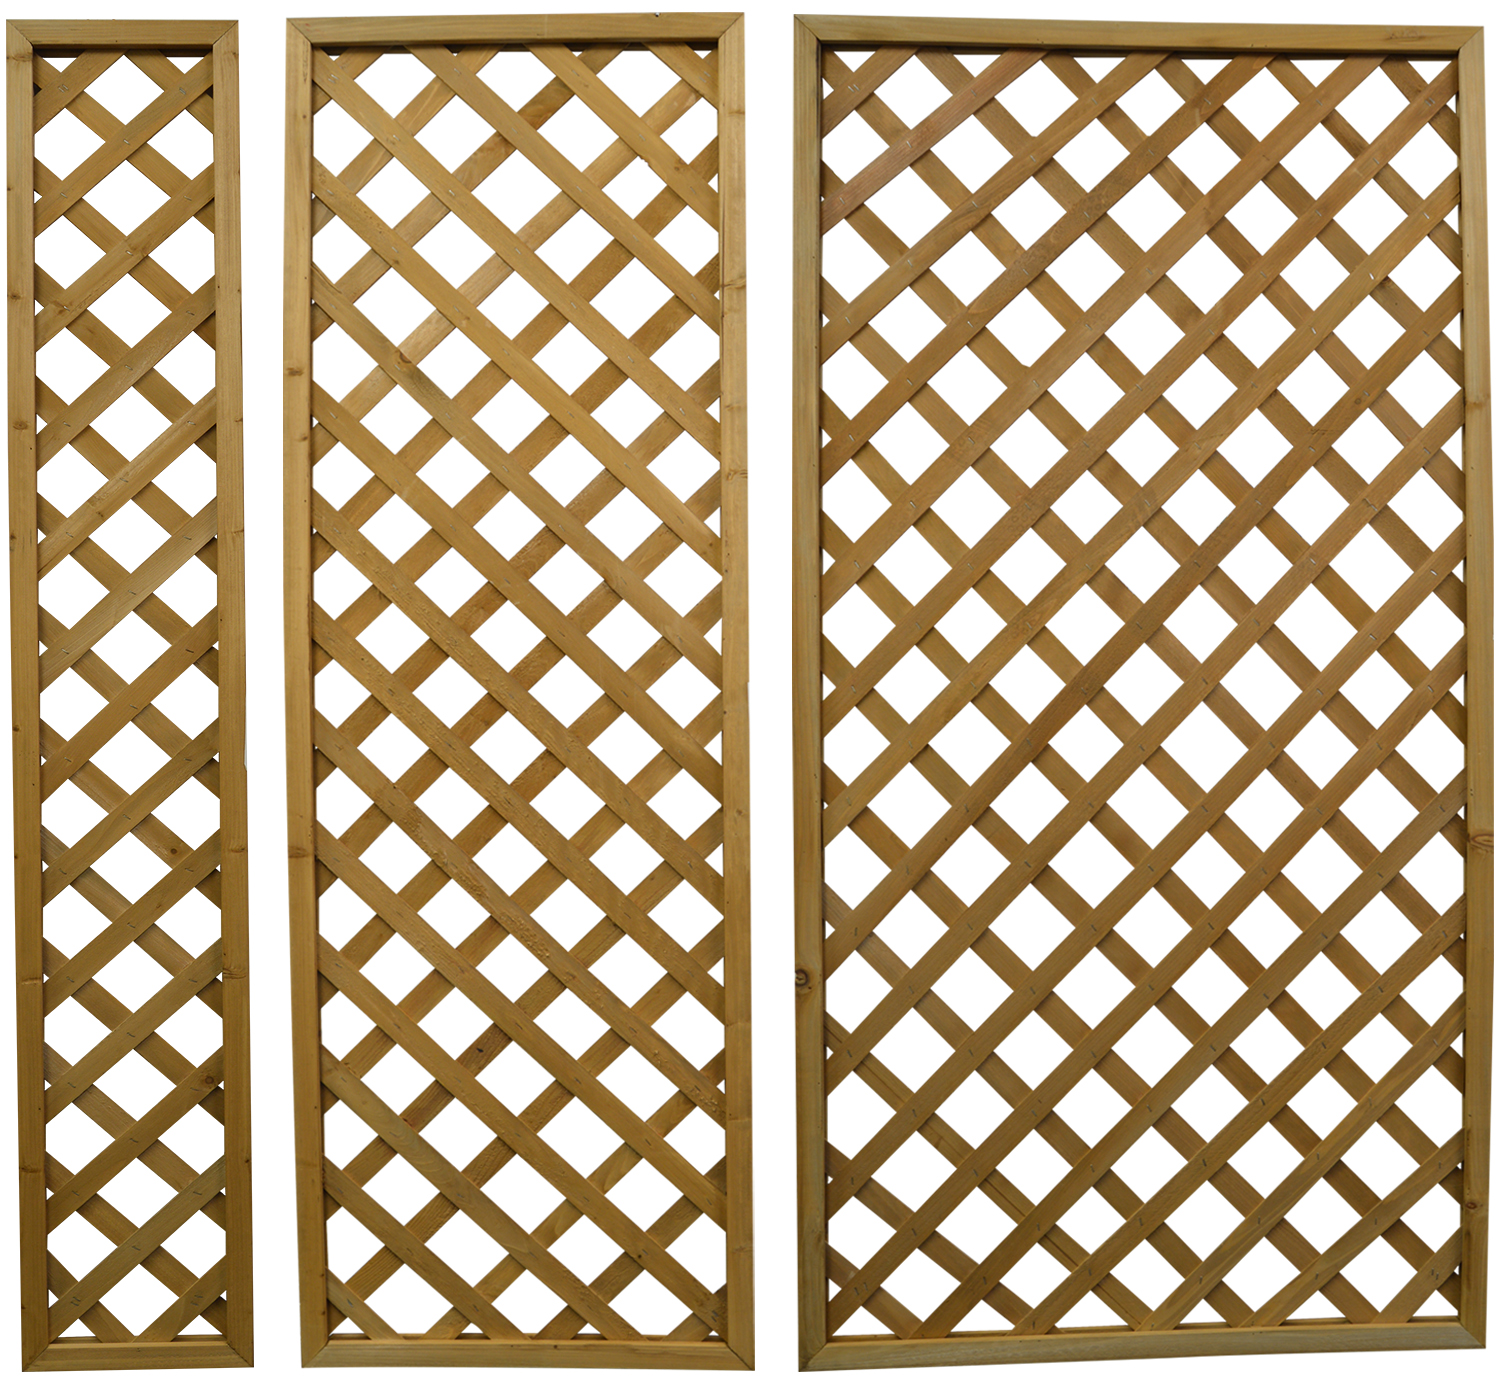 Woodside wooden outdoor 180cm lattice pattern garden for Lattice screen fence